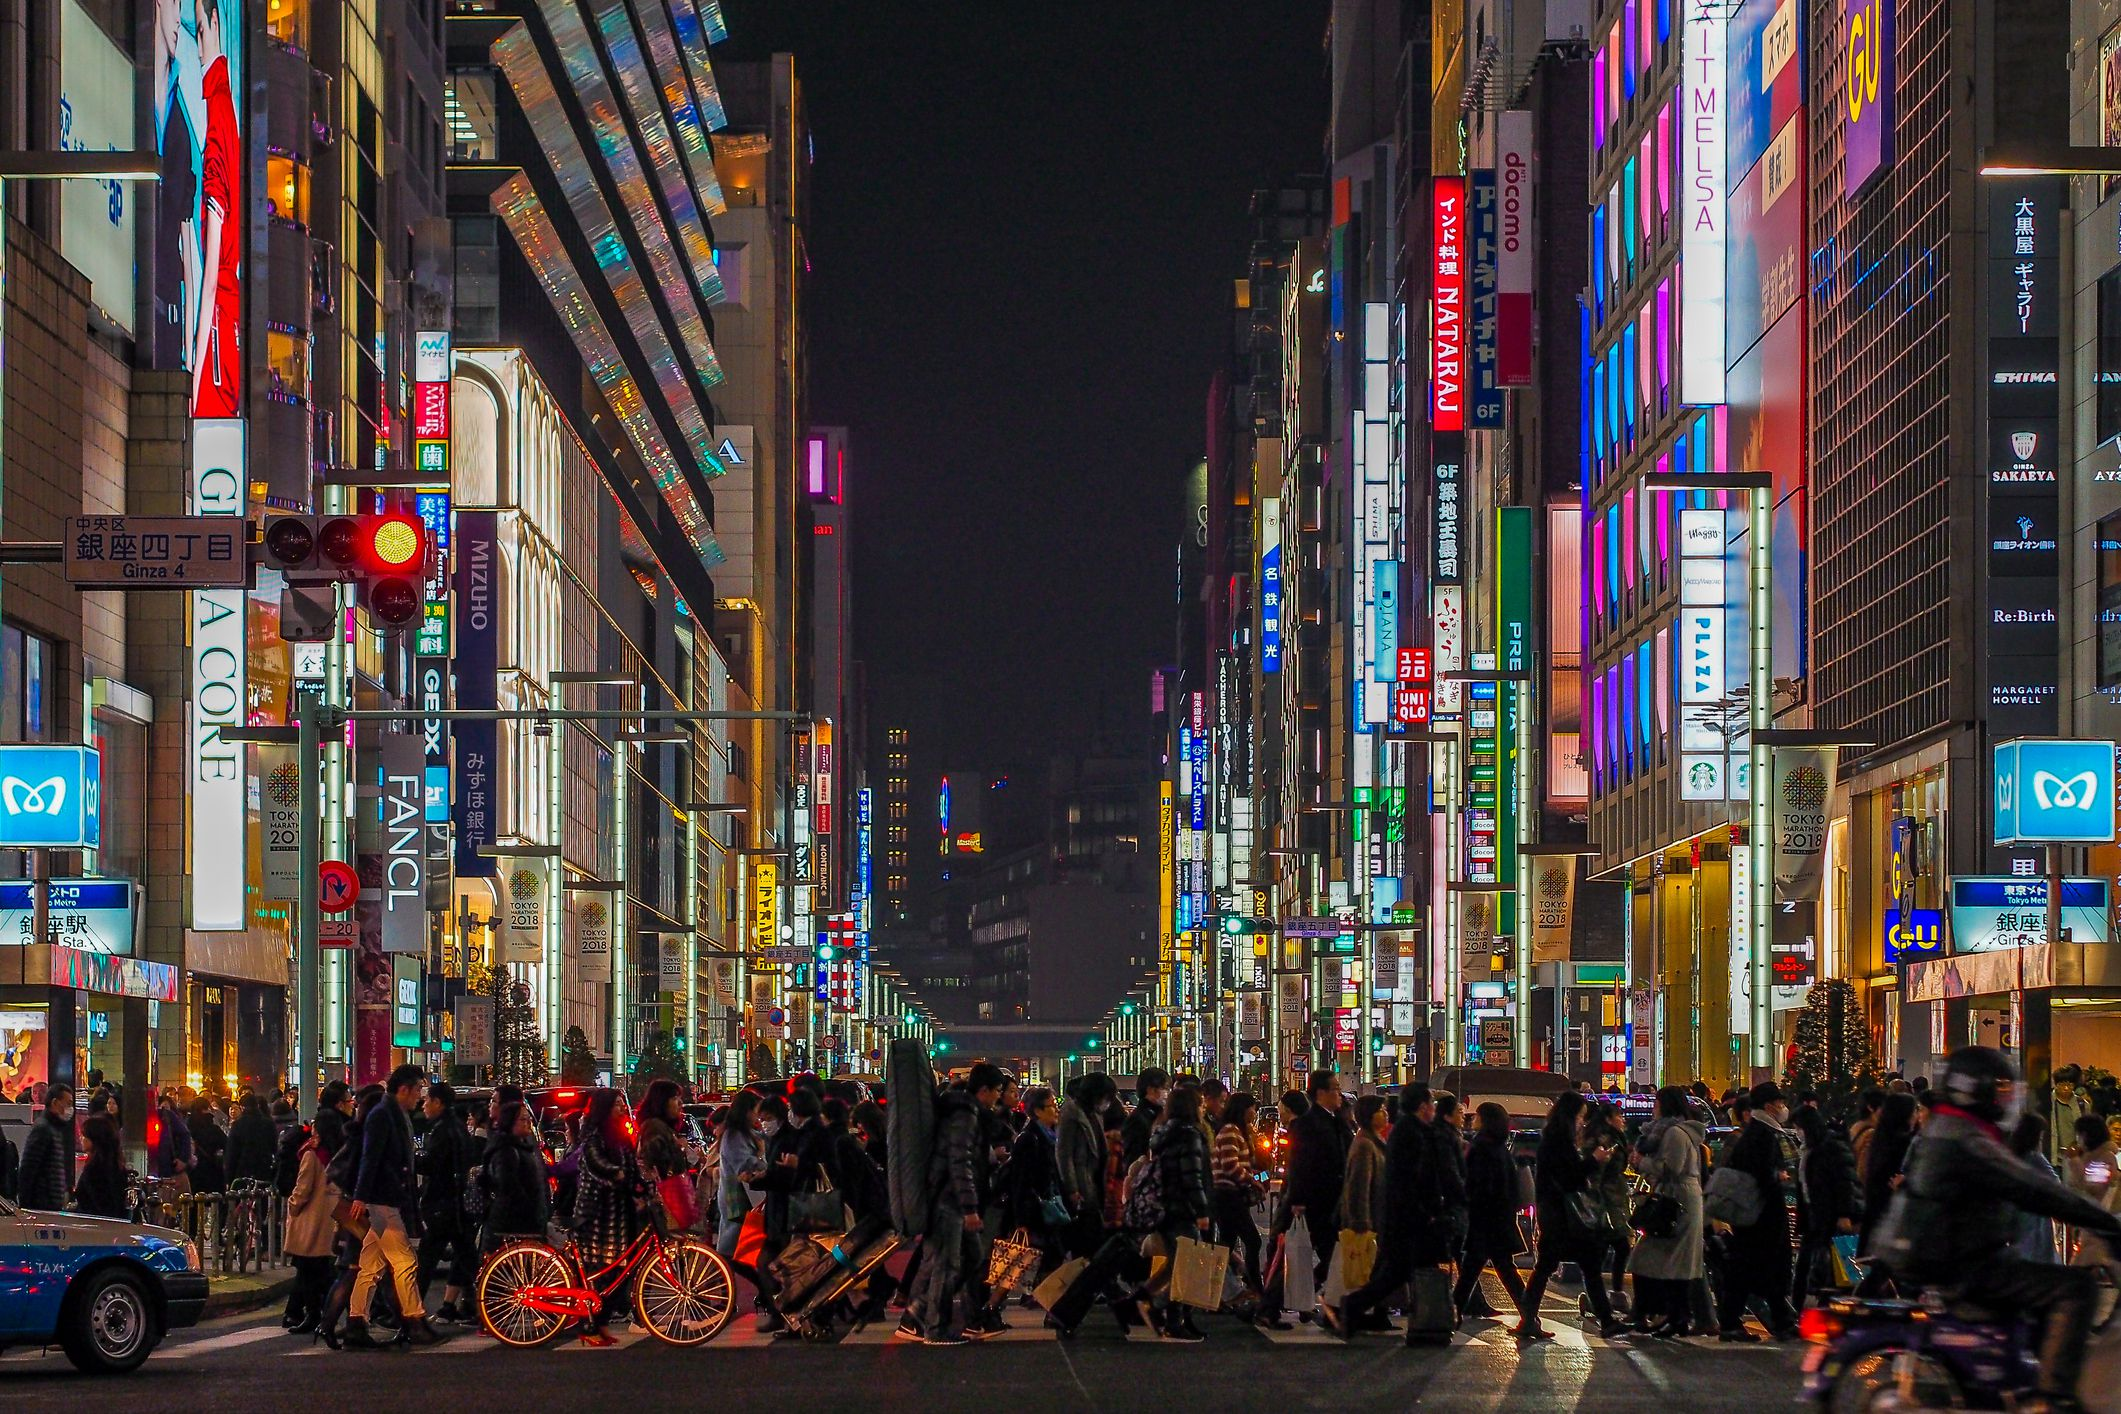 Ginza Avenues Lined with Shops of Expensive Brands in the Heart of Tokyo, Japan